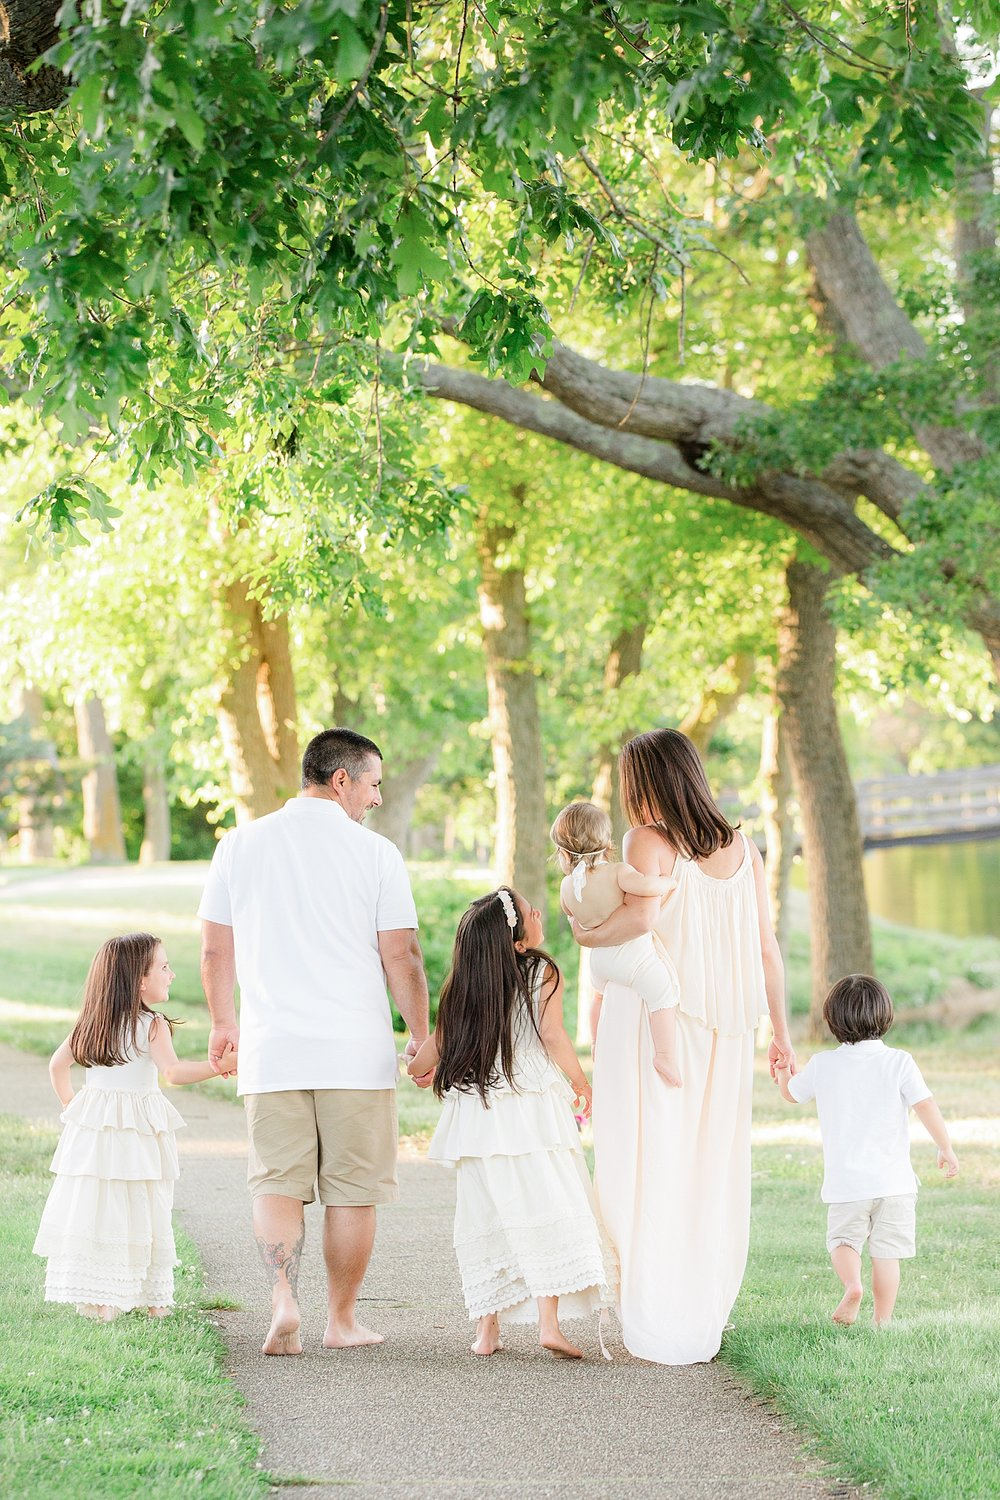 Our Approach - Family photographs are so important. Find out why this will be the easiest decision you've ever made.